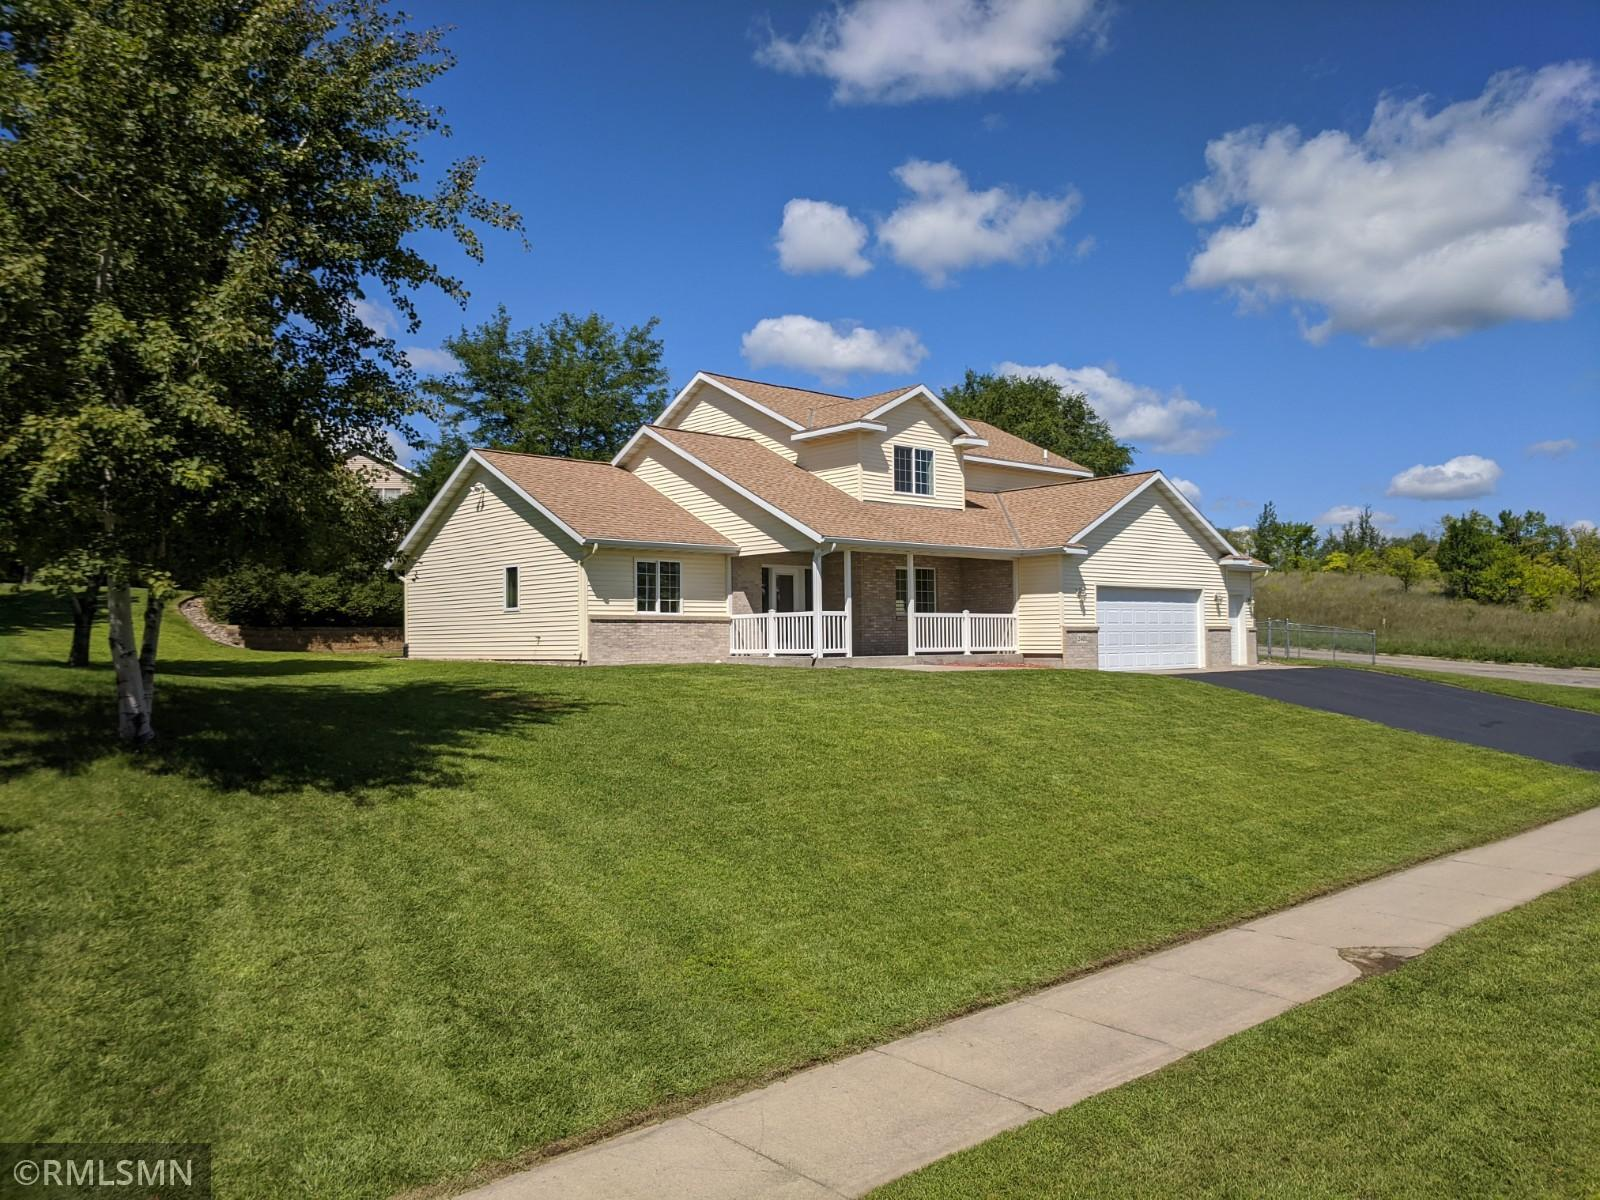 Move-in Ready! This home is located in a beautiful tucked away neighborhood outside St. Cloud, with easy access to Highway 10. The home has spectacular curb appeal with its large corner lot, in-ground sprinkler system, and covered front porch! It has a large 3 stall attached garage, with mud room/laundry area coming into the home through the garage. When entering through the front, your eyes will be immediately drawn to the fireplace, with large vaulted ceiling. The main floor offers an option for a home office or bedroom just off the entry with a bathroom for your guests, a main floor owners suite w/WIC and private bathroom, a large kitchen with granite countertops, brand-new stainless-steel appliances, and a beautifully laid out dining room with tons of natural light. The 2nd floor features 2 bedrooms with large WICs, an additional 3rd bedroom, and a large full bathroom. The home is blocks from beautiful ski and mountain bike trails, Munsinger gardens, and many other park options!